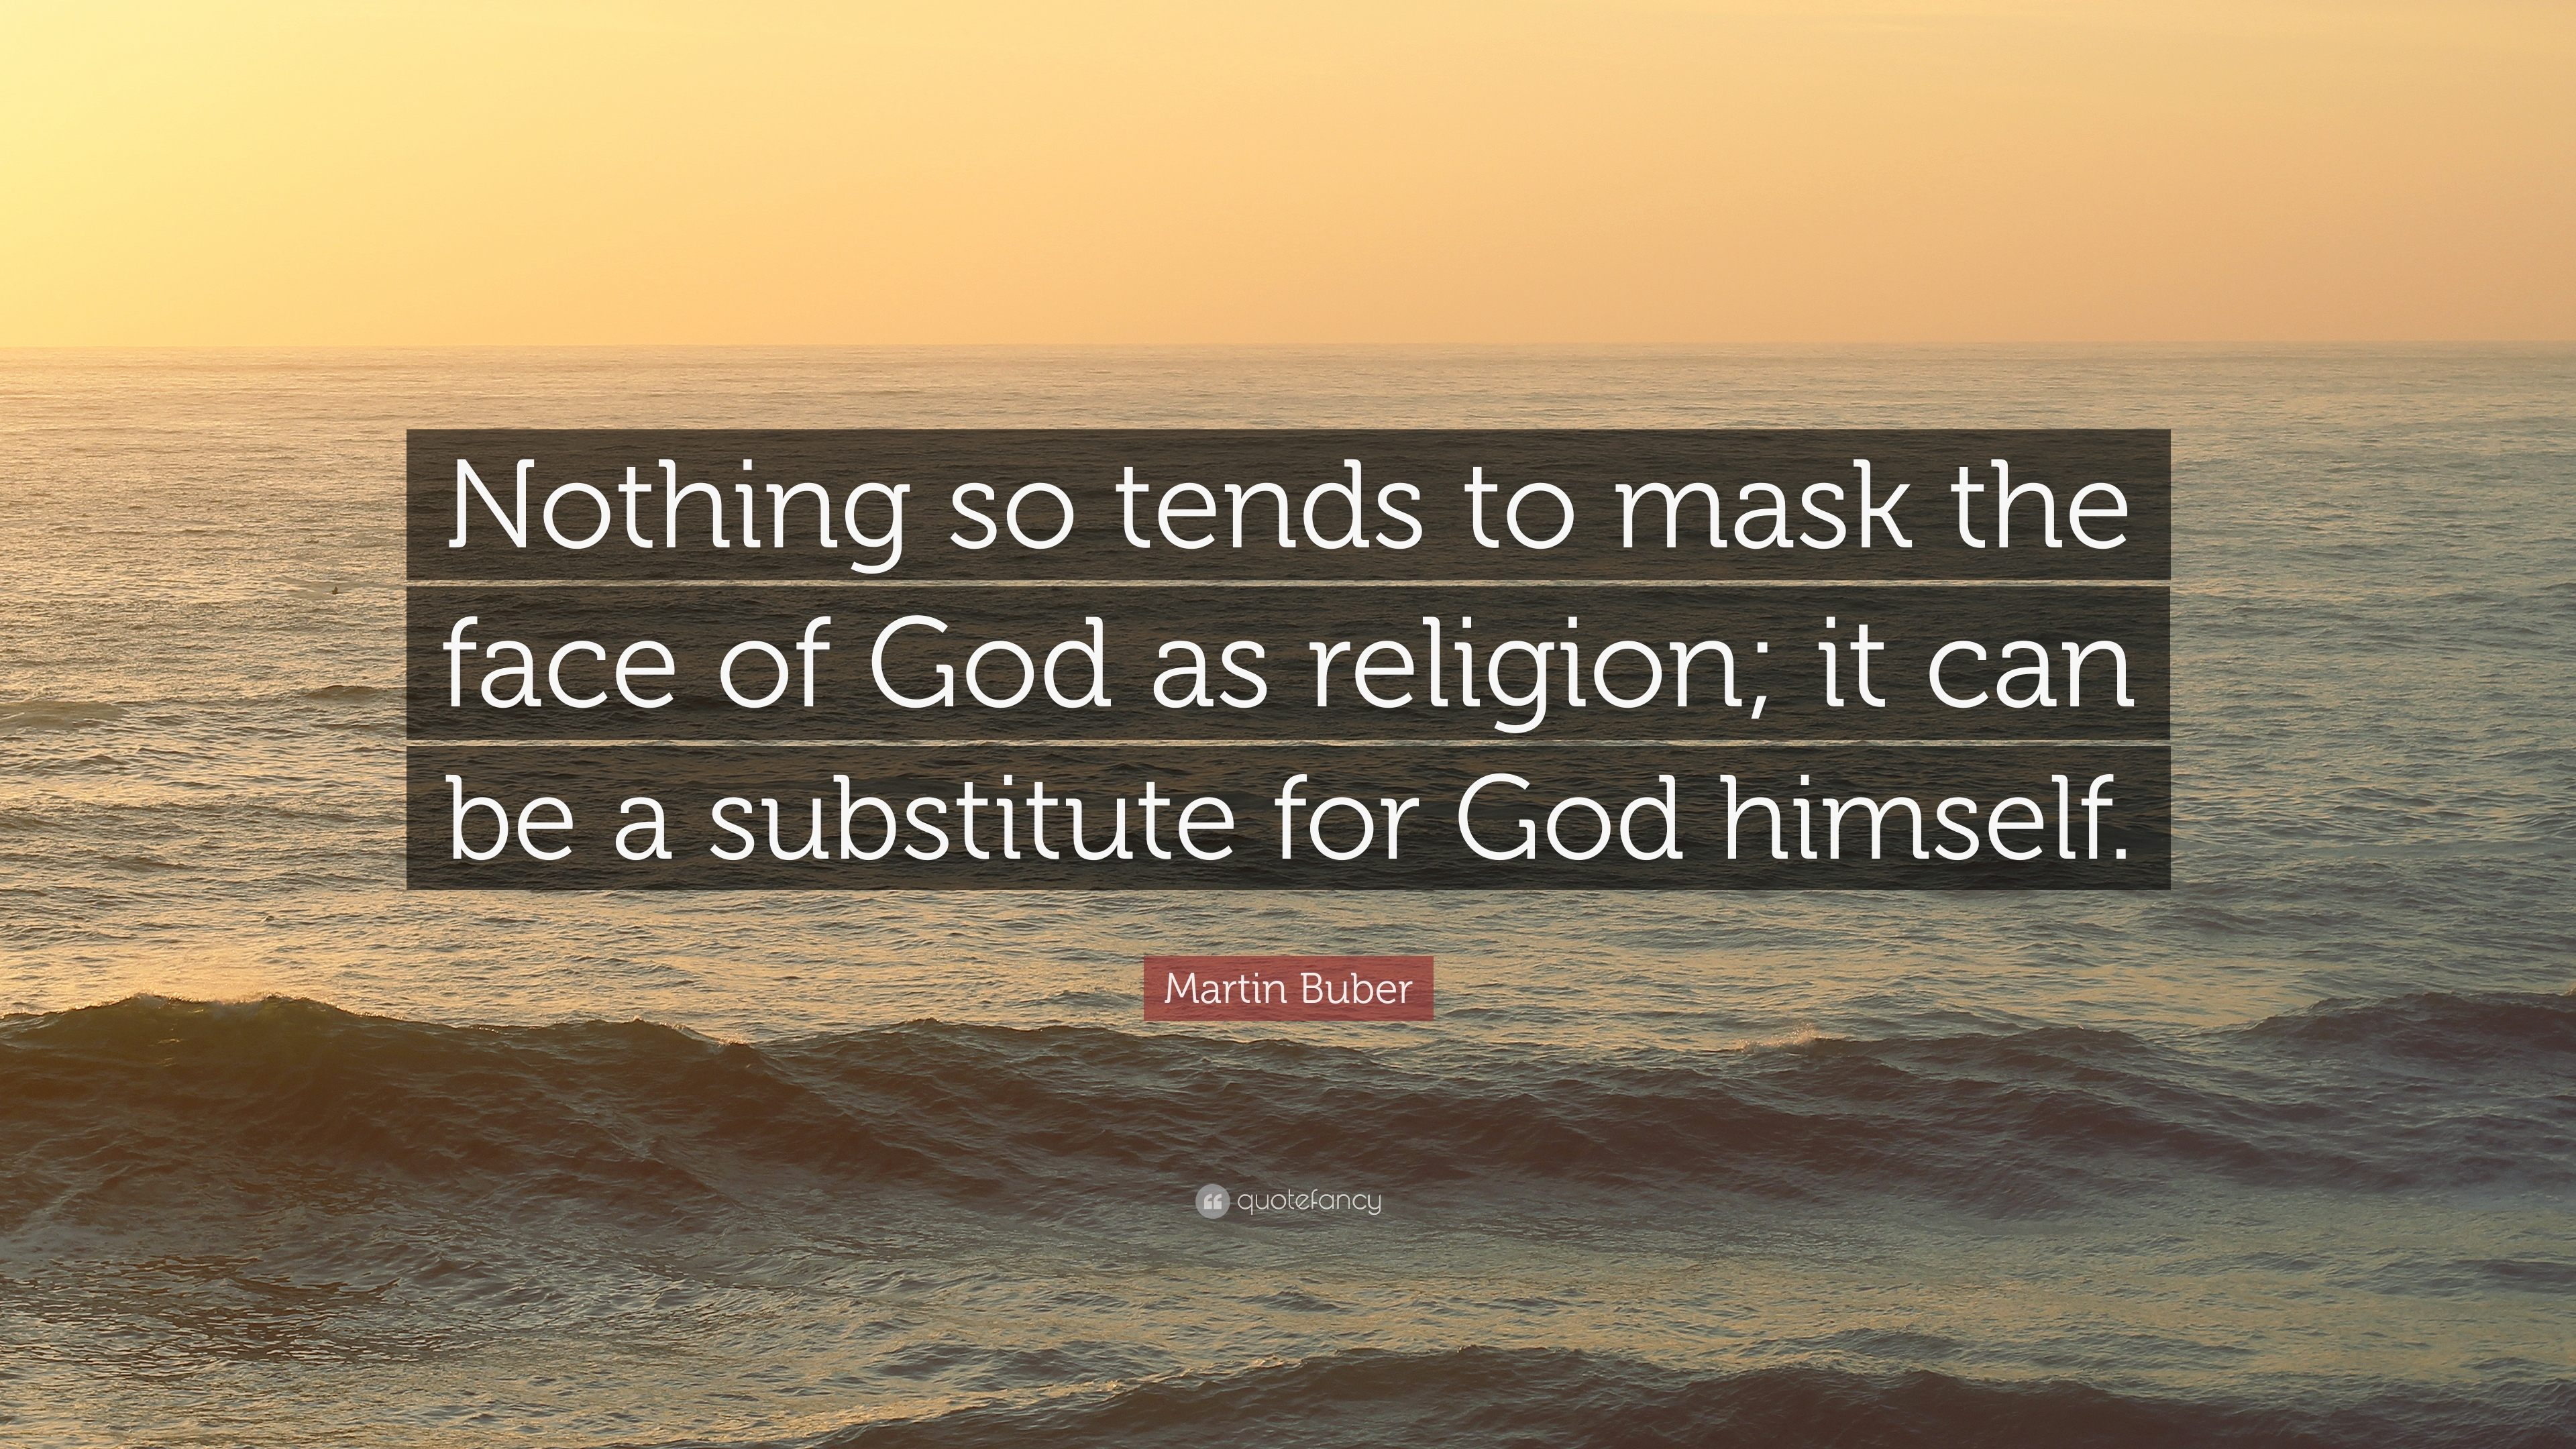 Martin Buber Quote: U201cNothing So Tends To Mask The Face Of God As Religion